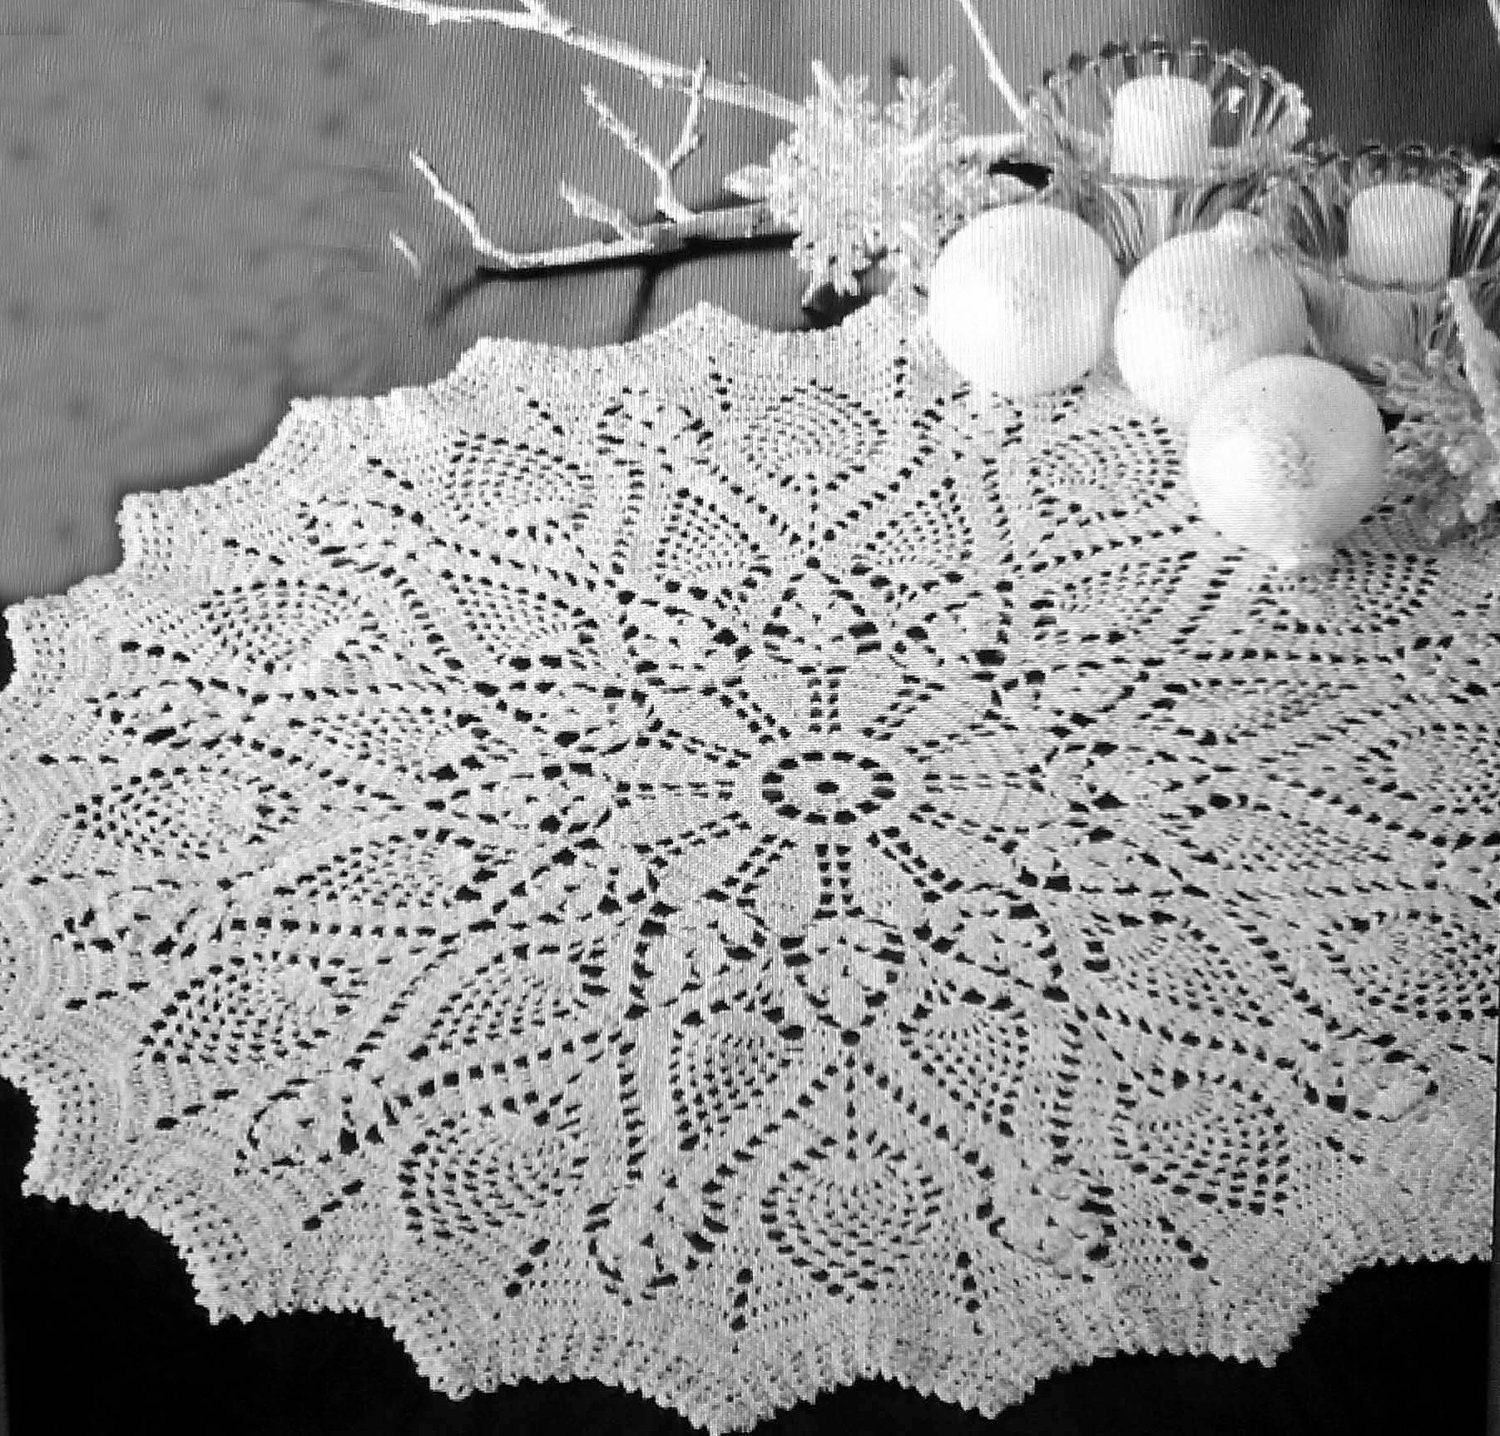 Hand - Crocheted Name Doilies by Lee Ann (CrochetGotta Love It!)